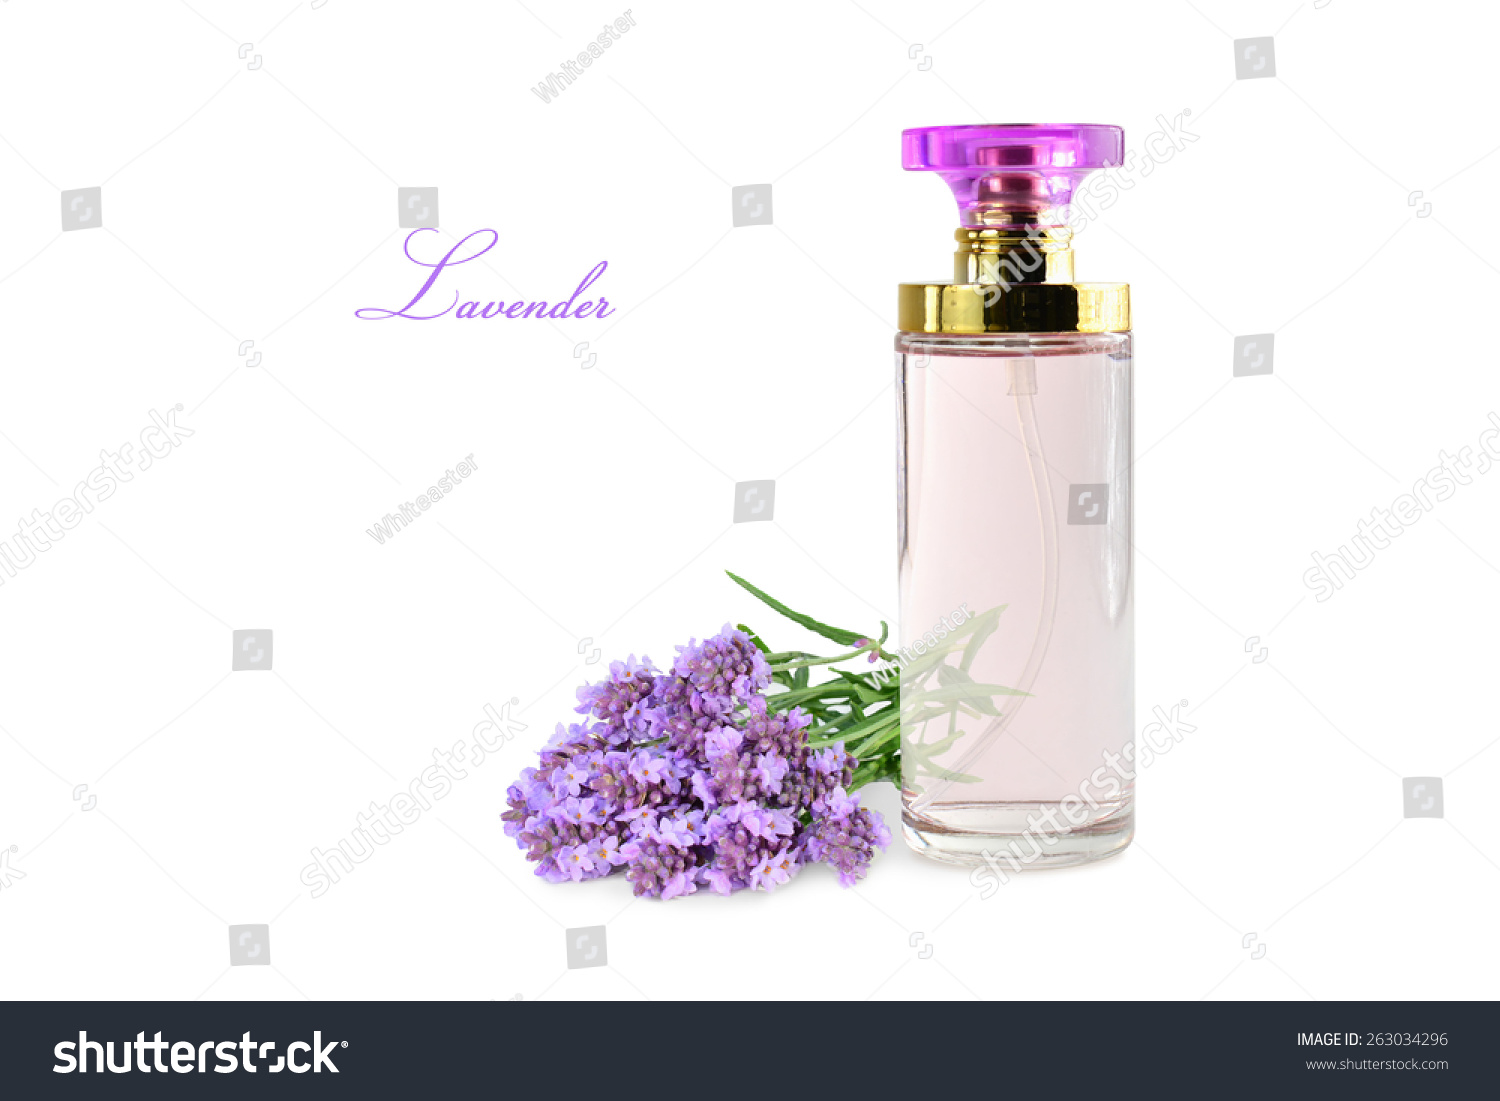 Woman Perfume In Beautiful Bottle And Lavender Flowers Isolated On